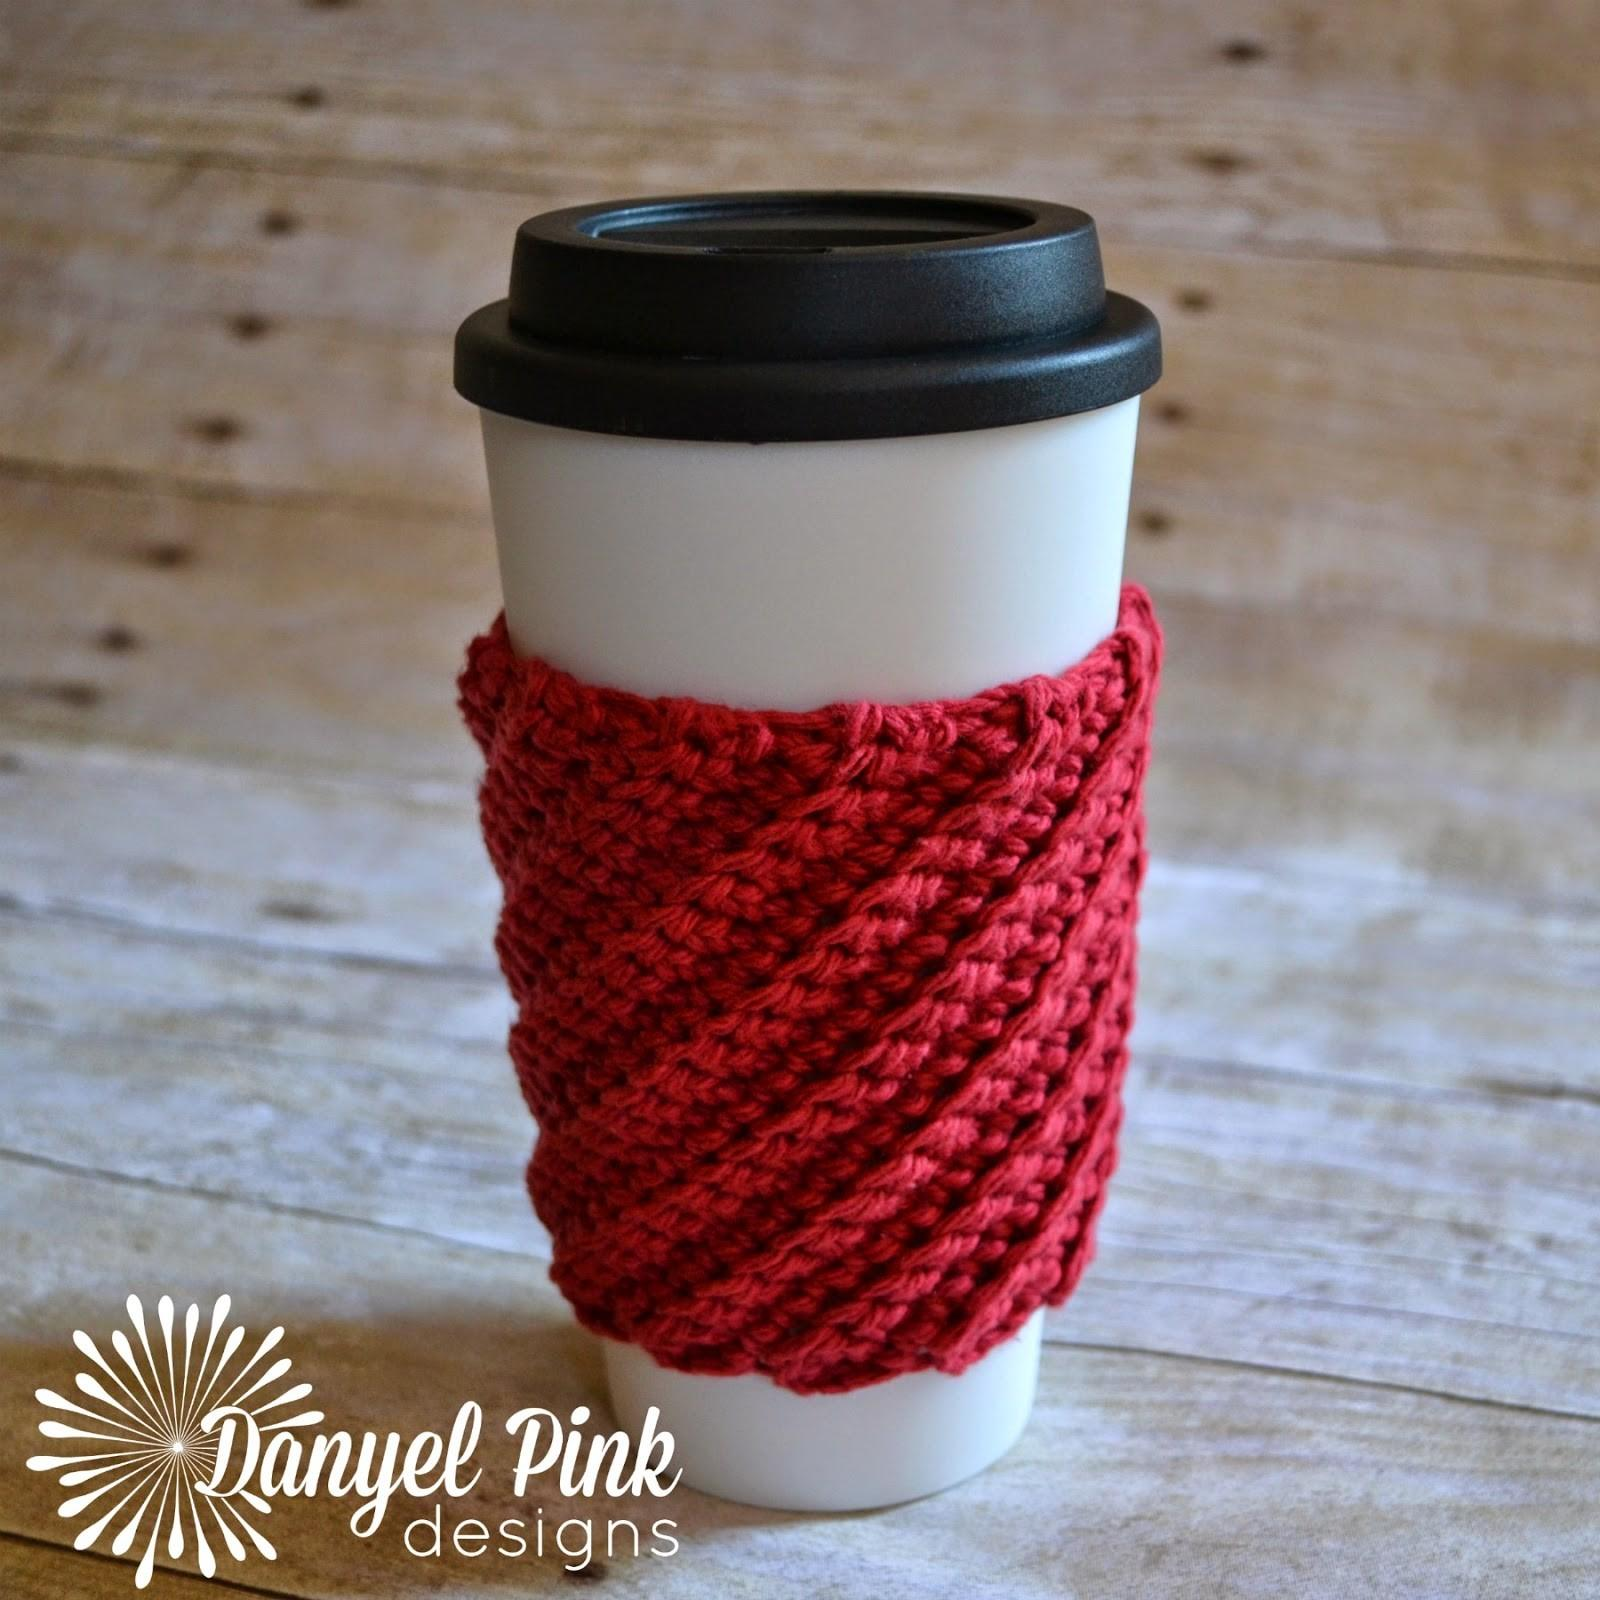 Danyel Pink Designs Crochet Pattern Crooked Coffee Cozy